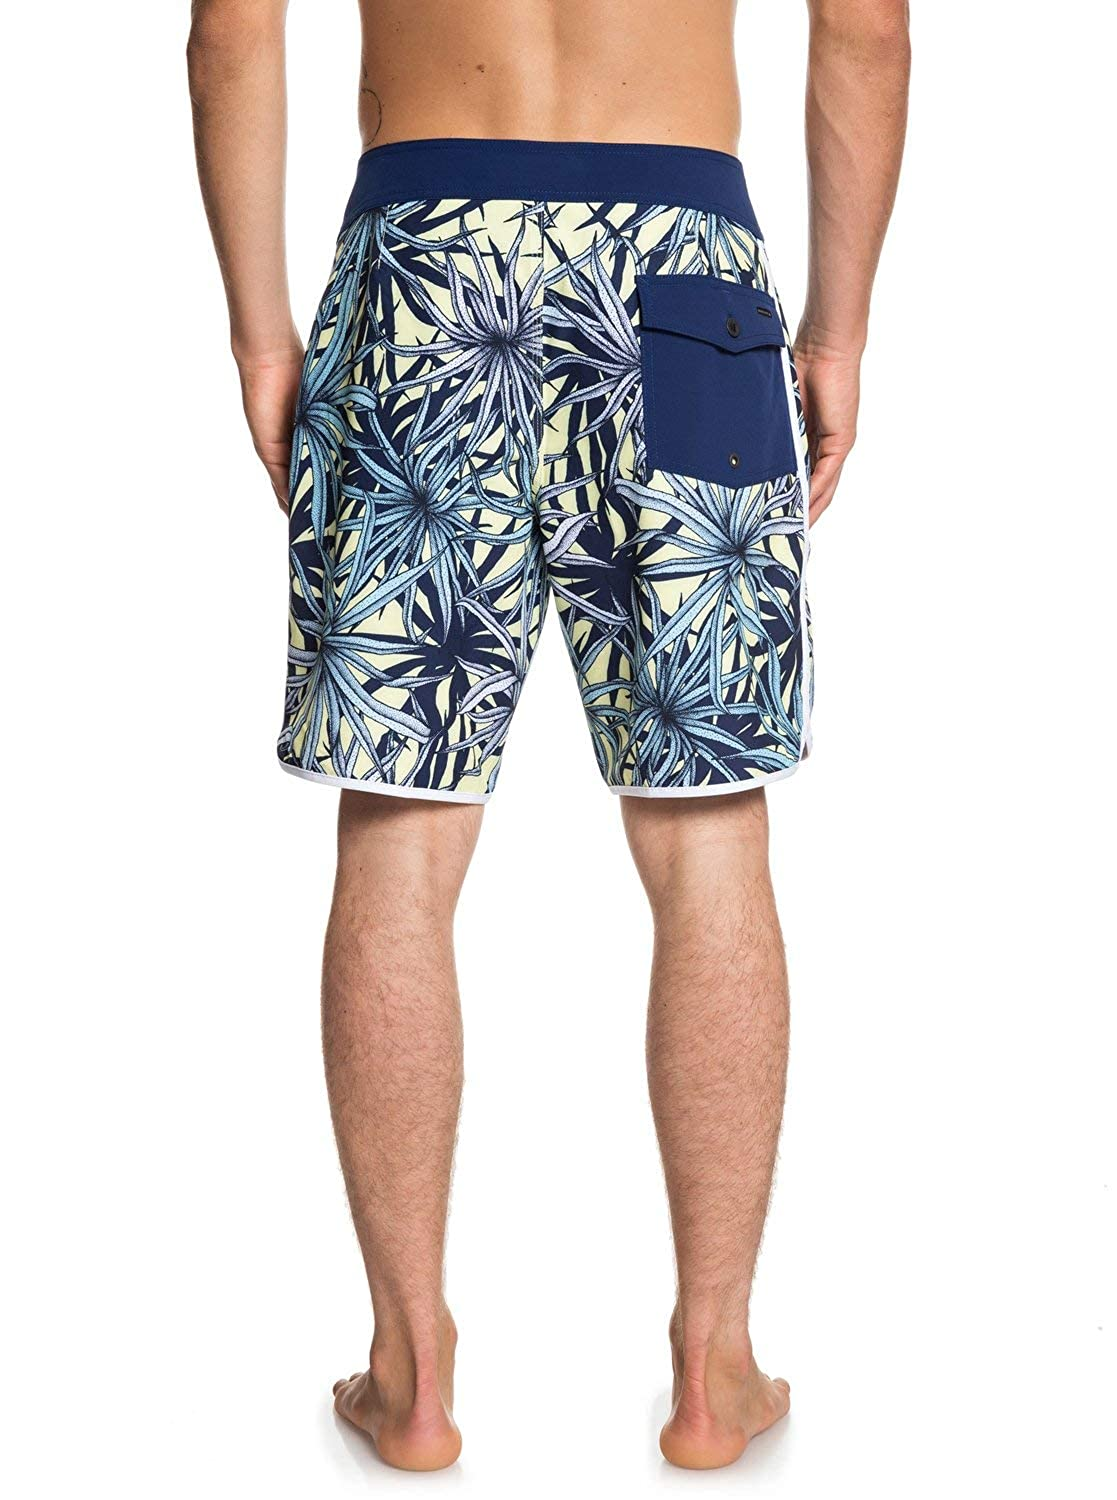 Quiksilver Mens Highline Pandana 19 Boardshort Swim Trunk